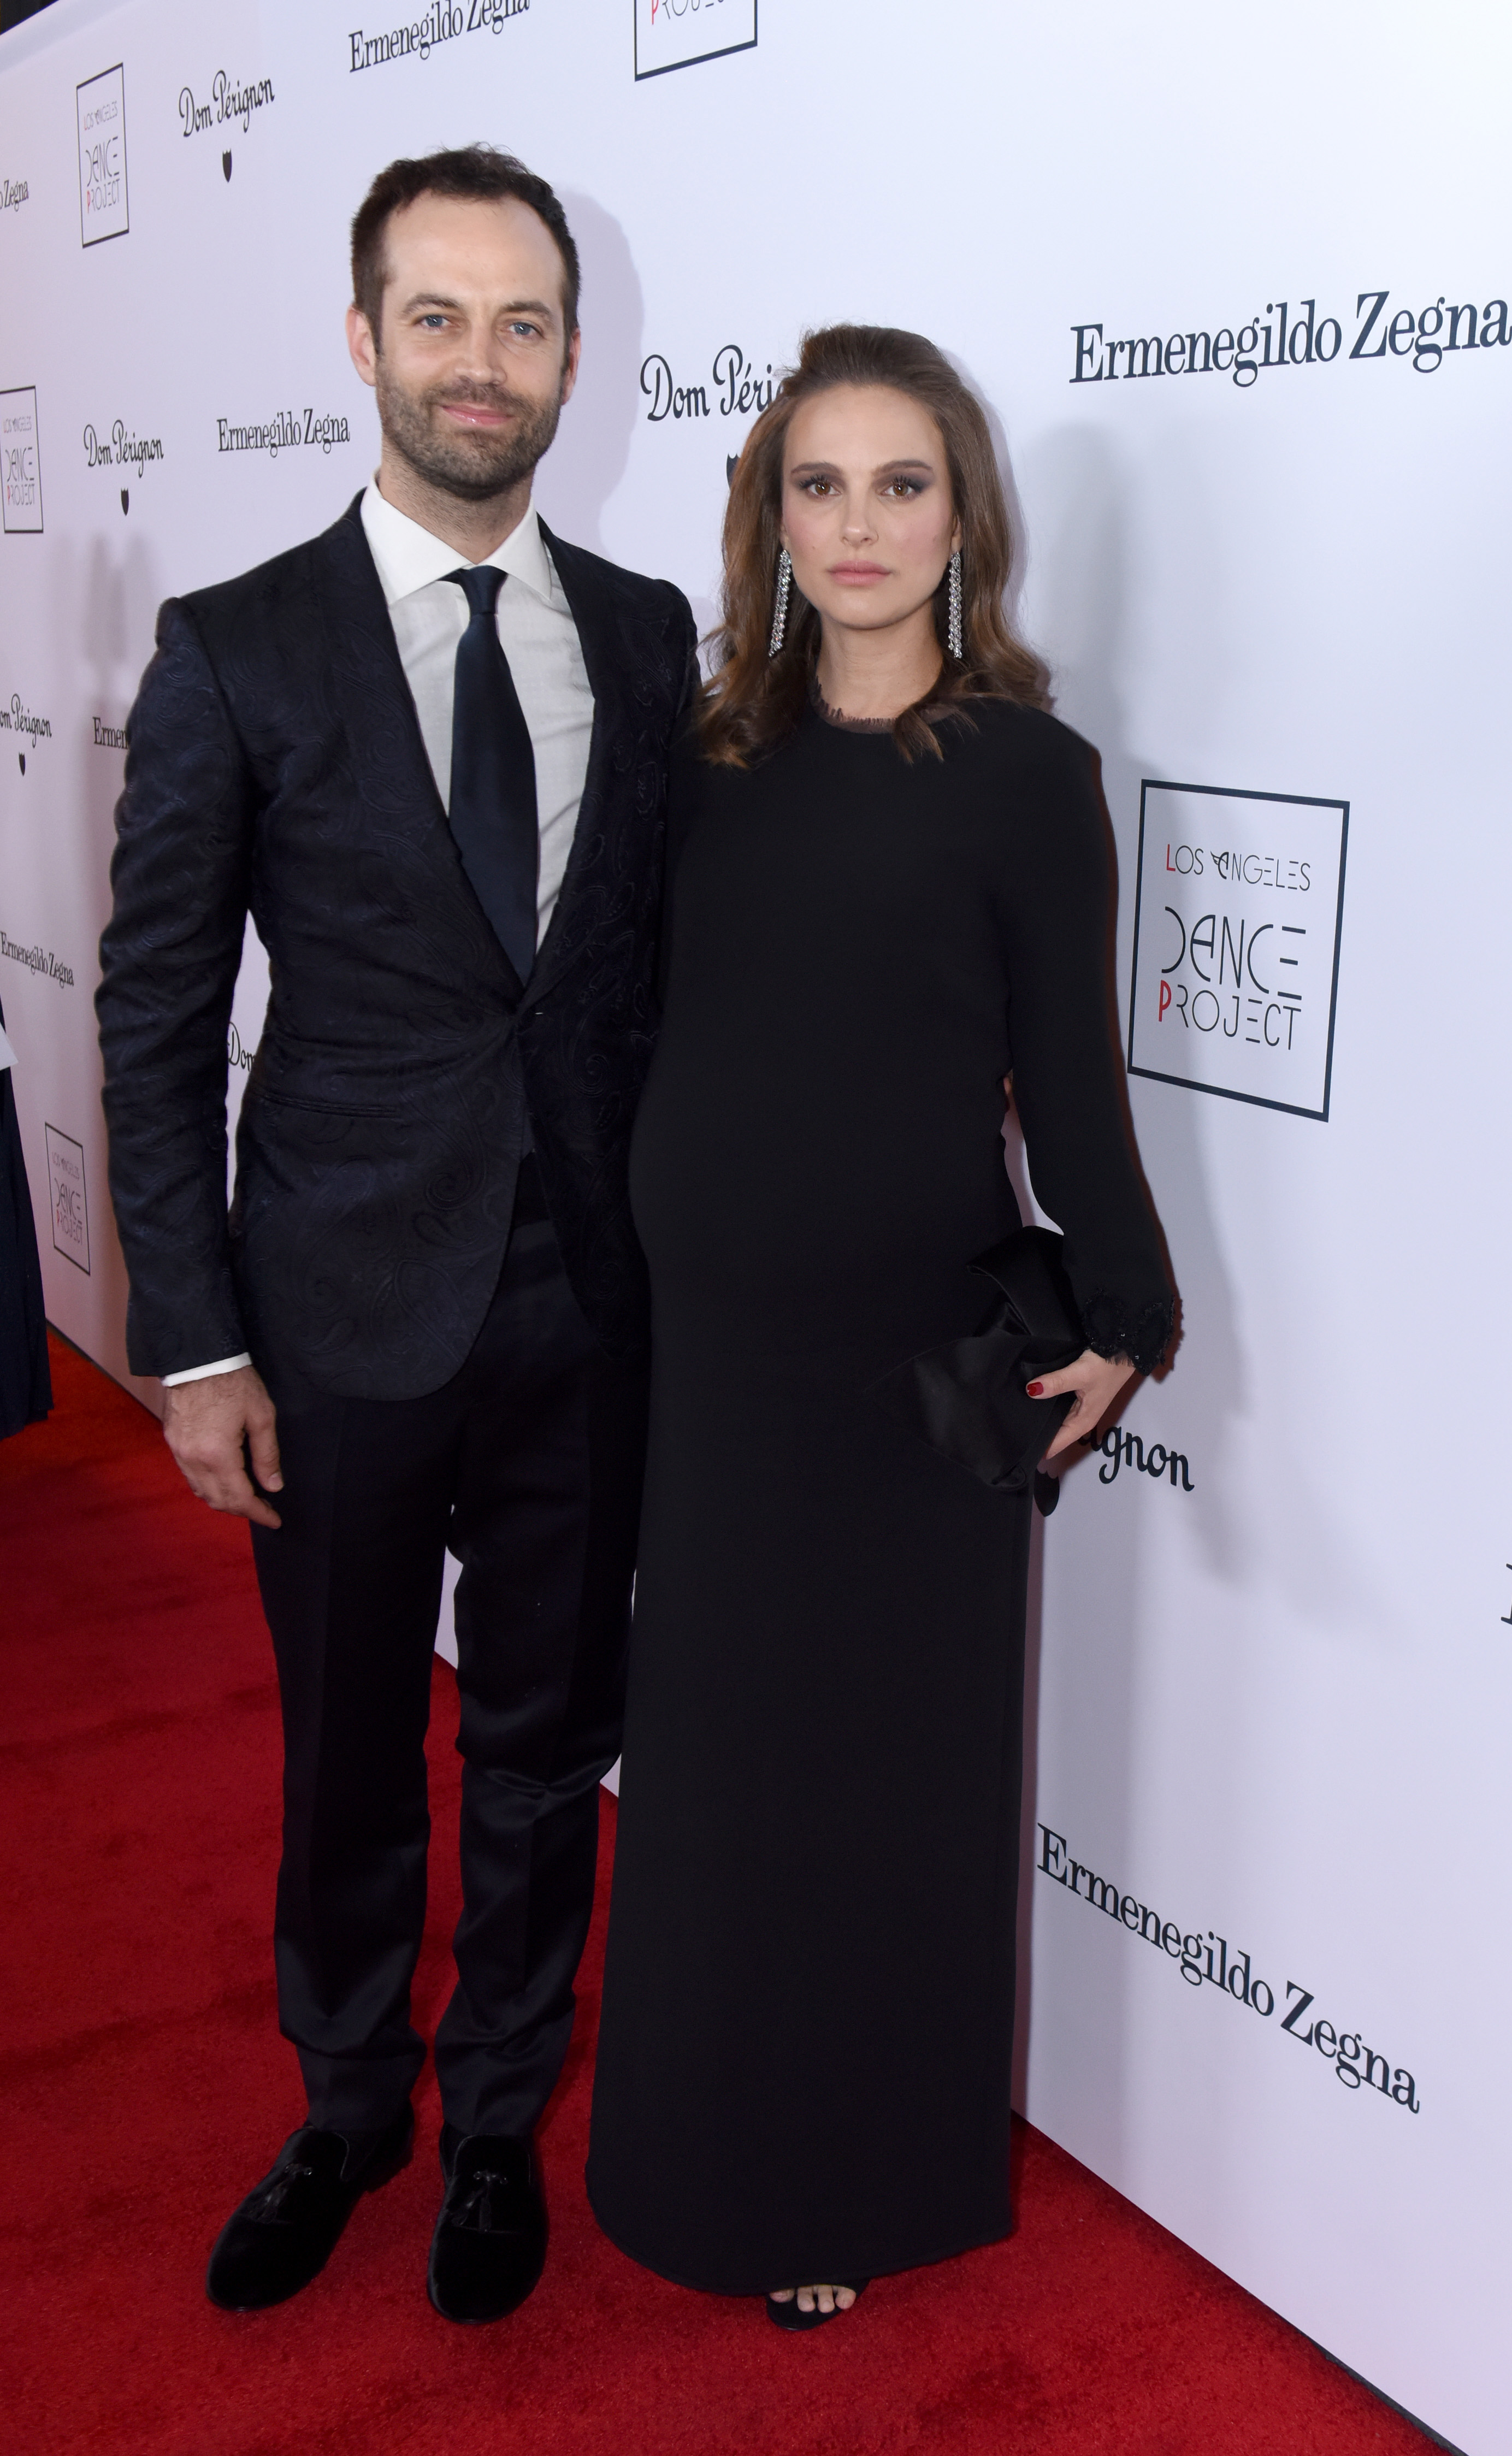 LOS ANGELES, CA - DECEMBER 10: Dancer and choreographer Benjamin Millepied and actress Natalie Portman attend the 2016 Los Angeles Dance Project Gala at The Theatre at Ace Hotel Downtown LA on December 10, 2016 in Los Angeles, California. (Photo by Vivien Killilea/Getty Images for L.A. Dance Project)